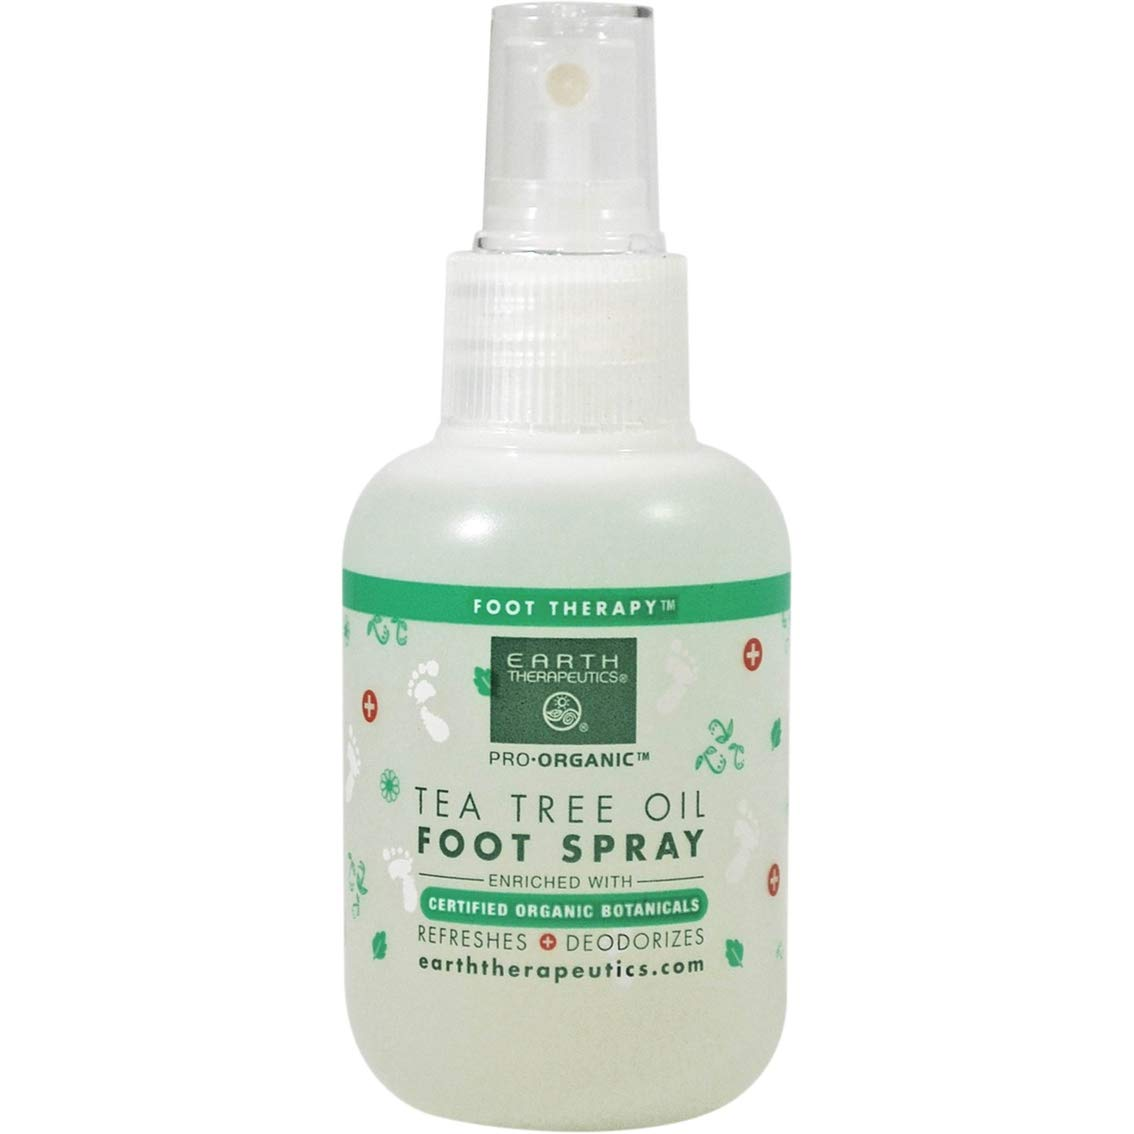 Earth Therapeutics Tea Tree Oil Foot Spray, 4 Ounce